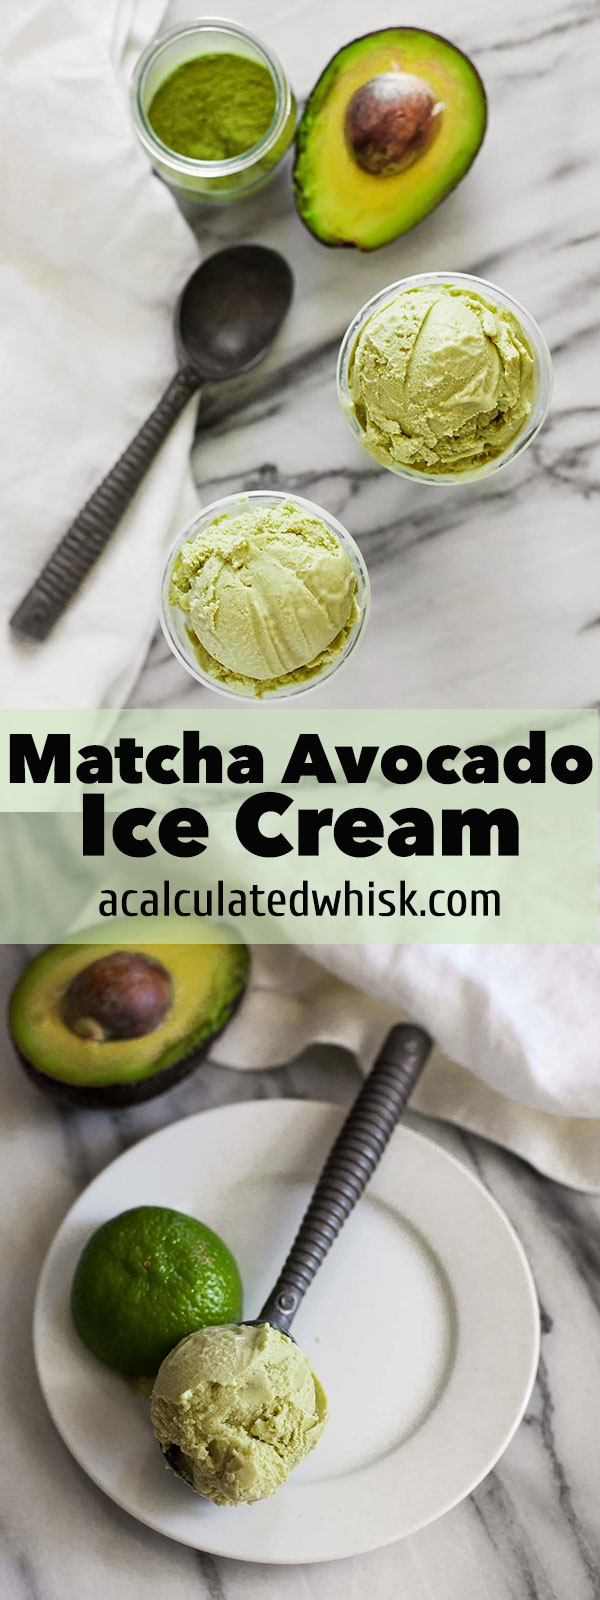 Matcha Avocado Ice Cream (Gluten free with a dairy-free option)